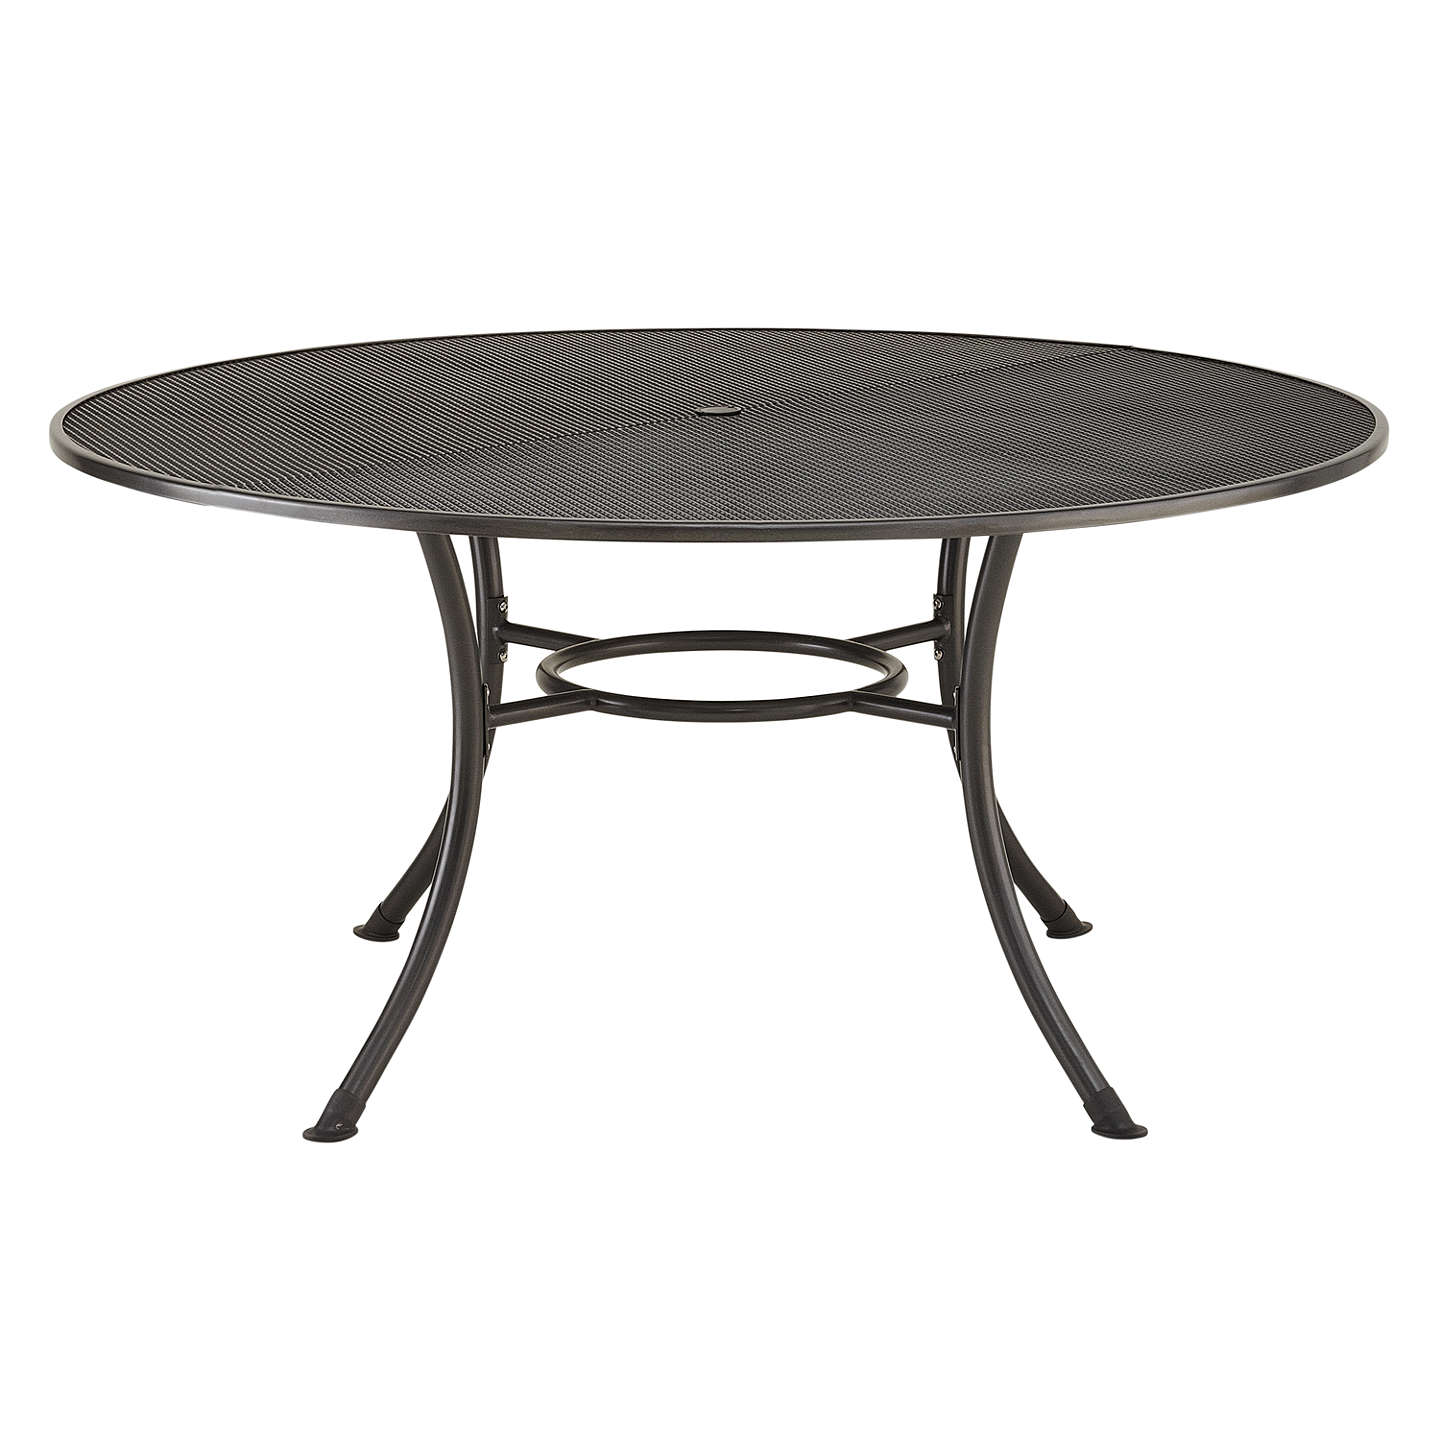 BuyJohn Lewis Henley by KETTLER Round 6-Seater Garden Dining Table, Dia.150cm, Grey Online at johnlewis.com